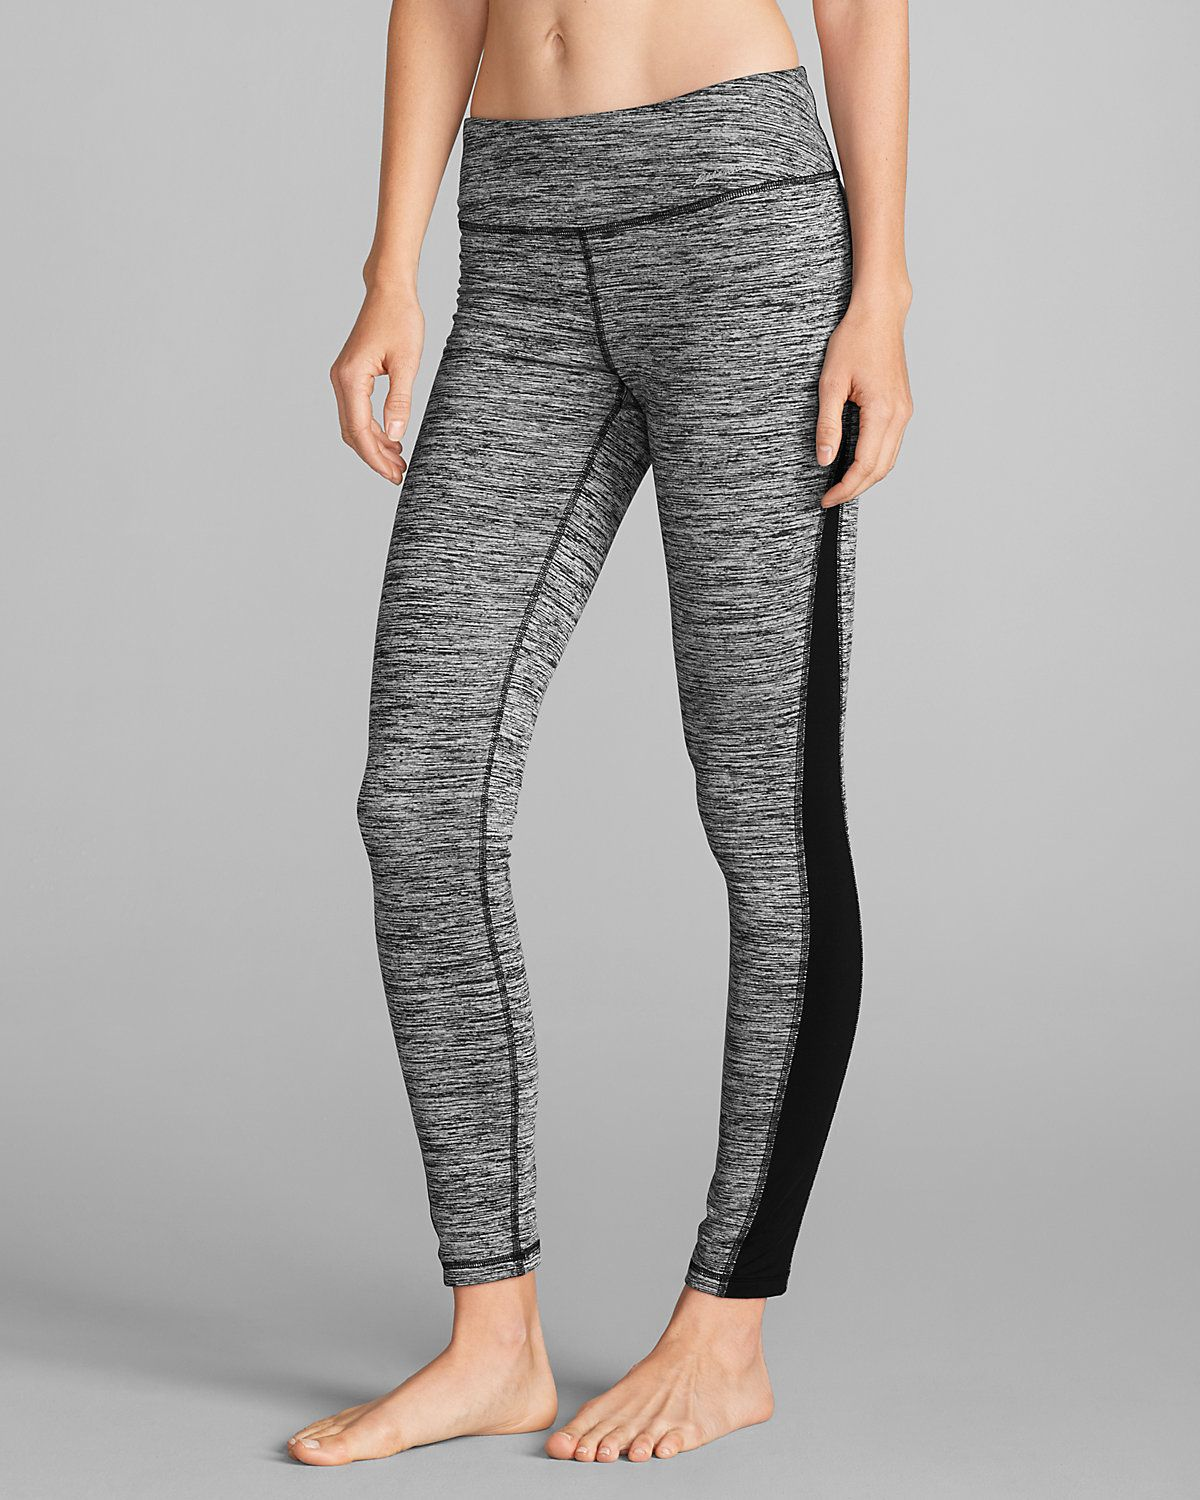 21a29bbbd84ac Women's Crossover Leggings - Space Dyed | Eddie Bauer | Clothing ...